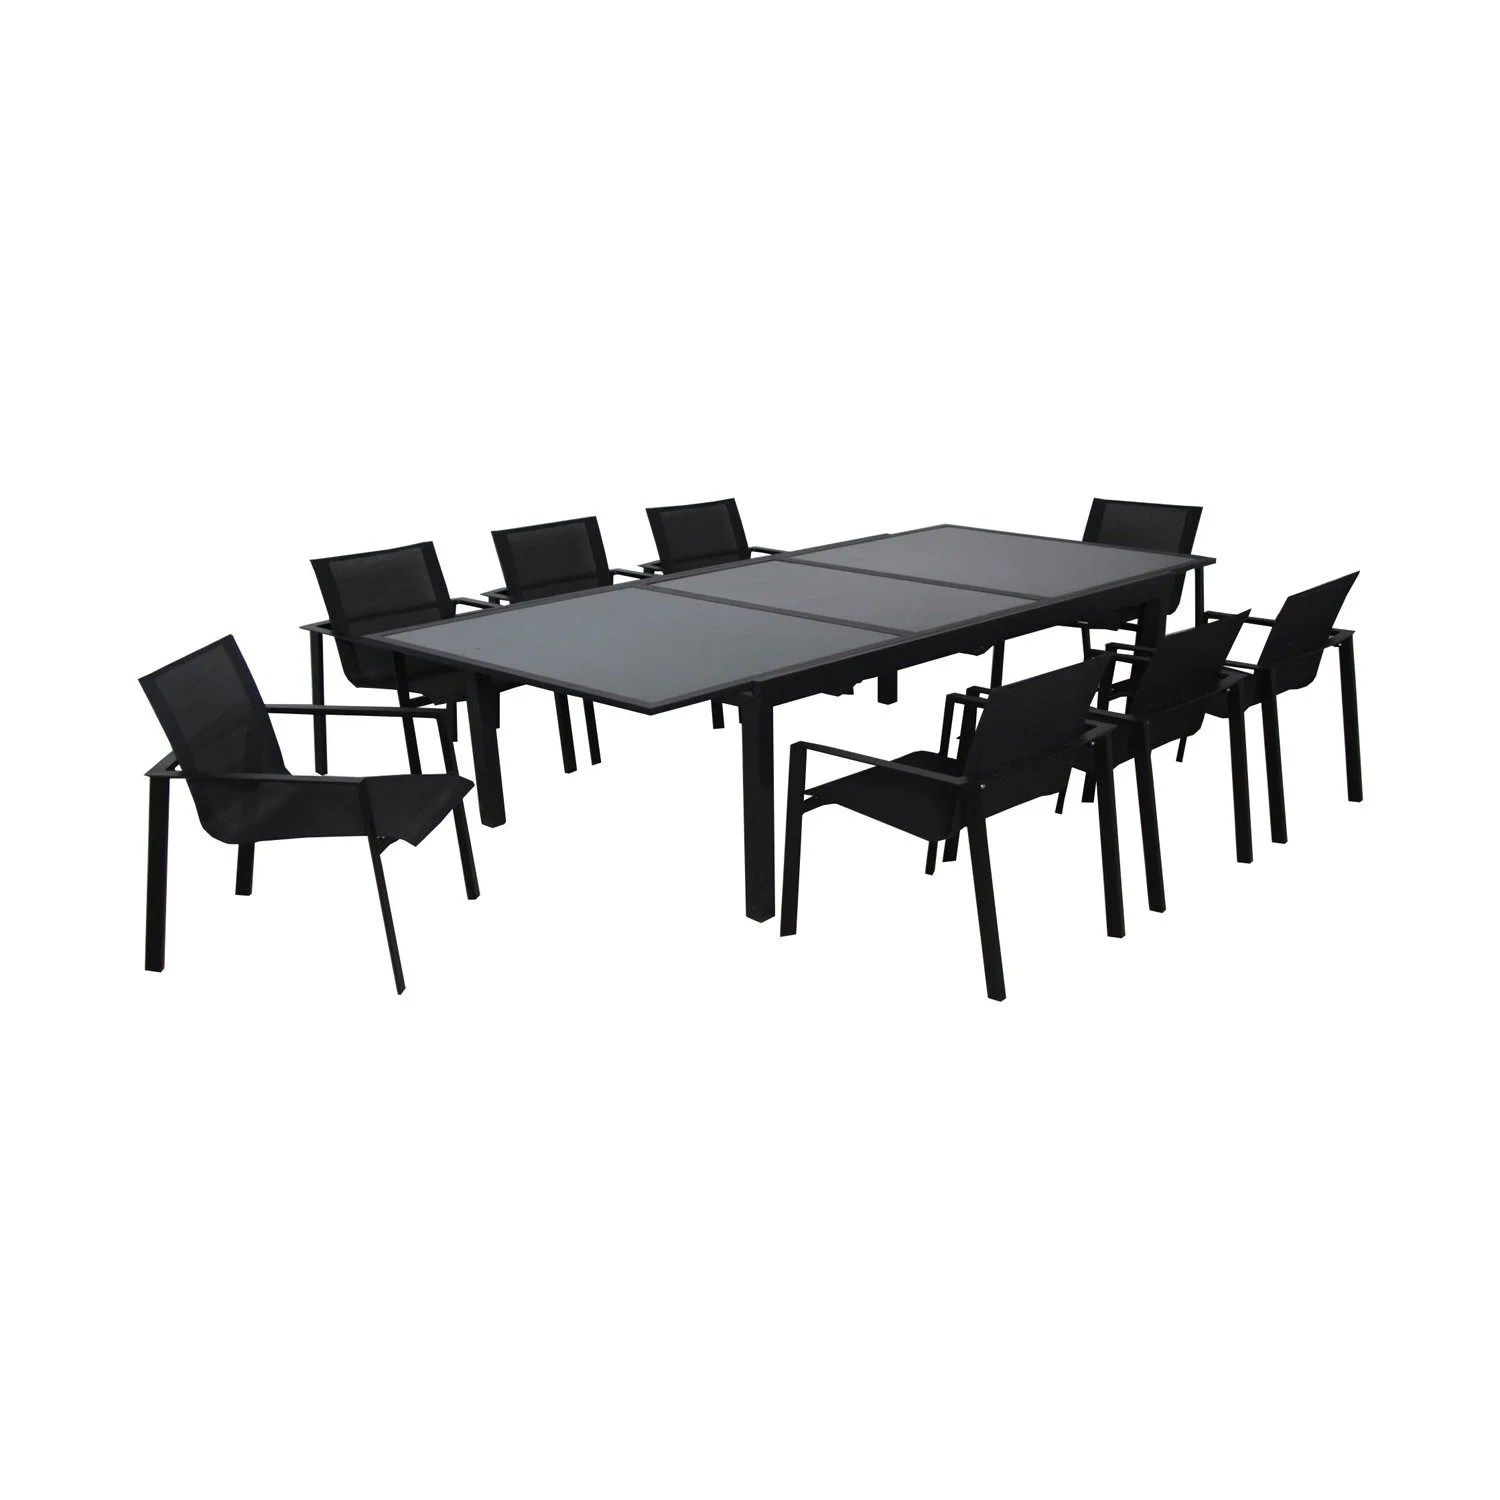 Table Exterieur Rallonge Table De Jardin Miami Rectangulaire Noir 8 Personnes